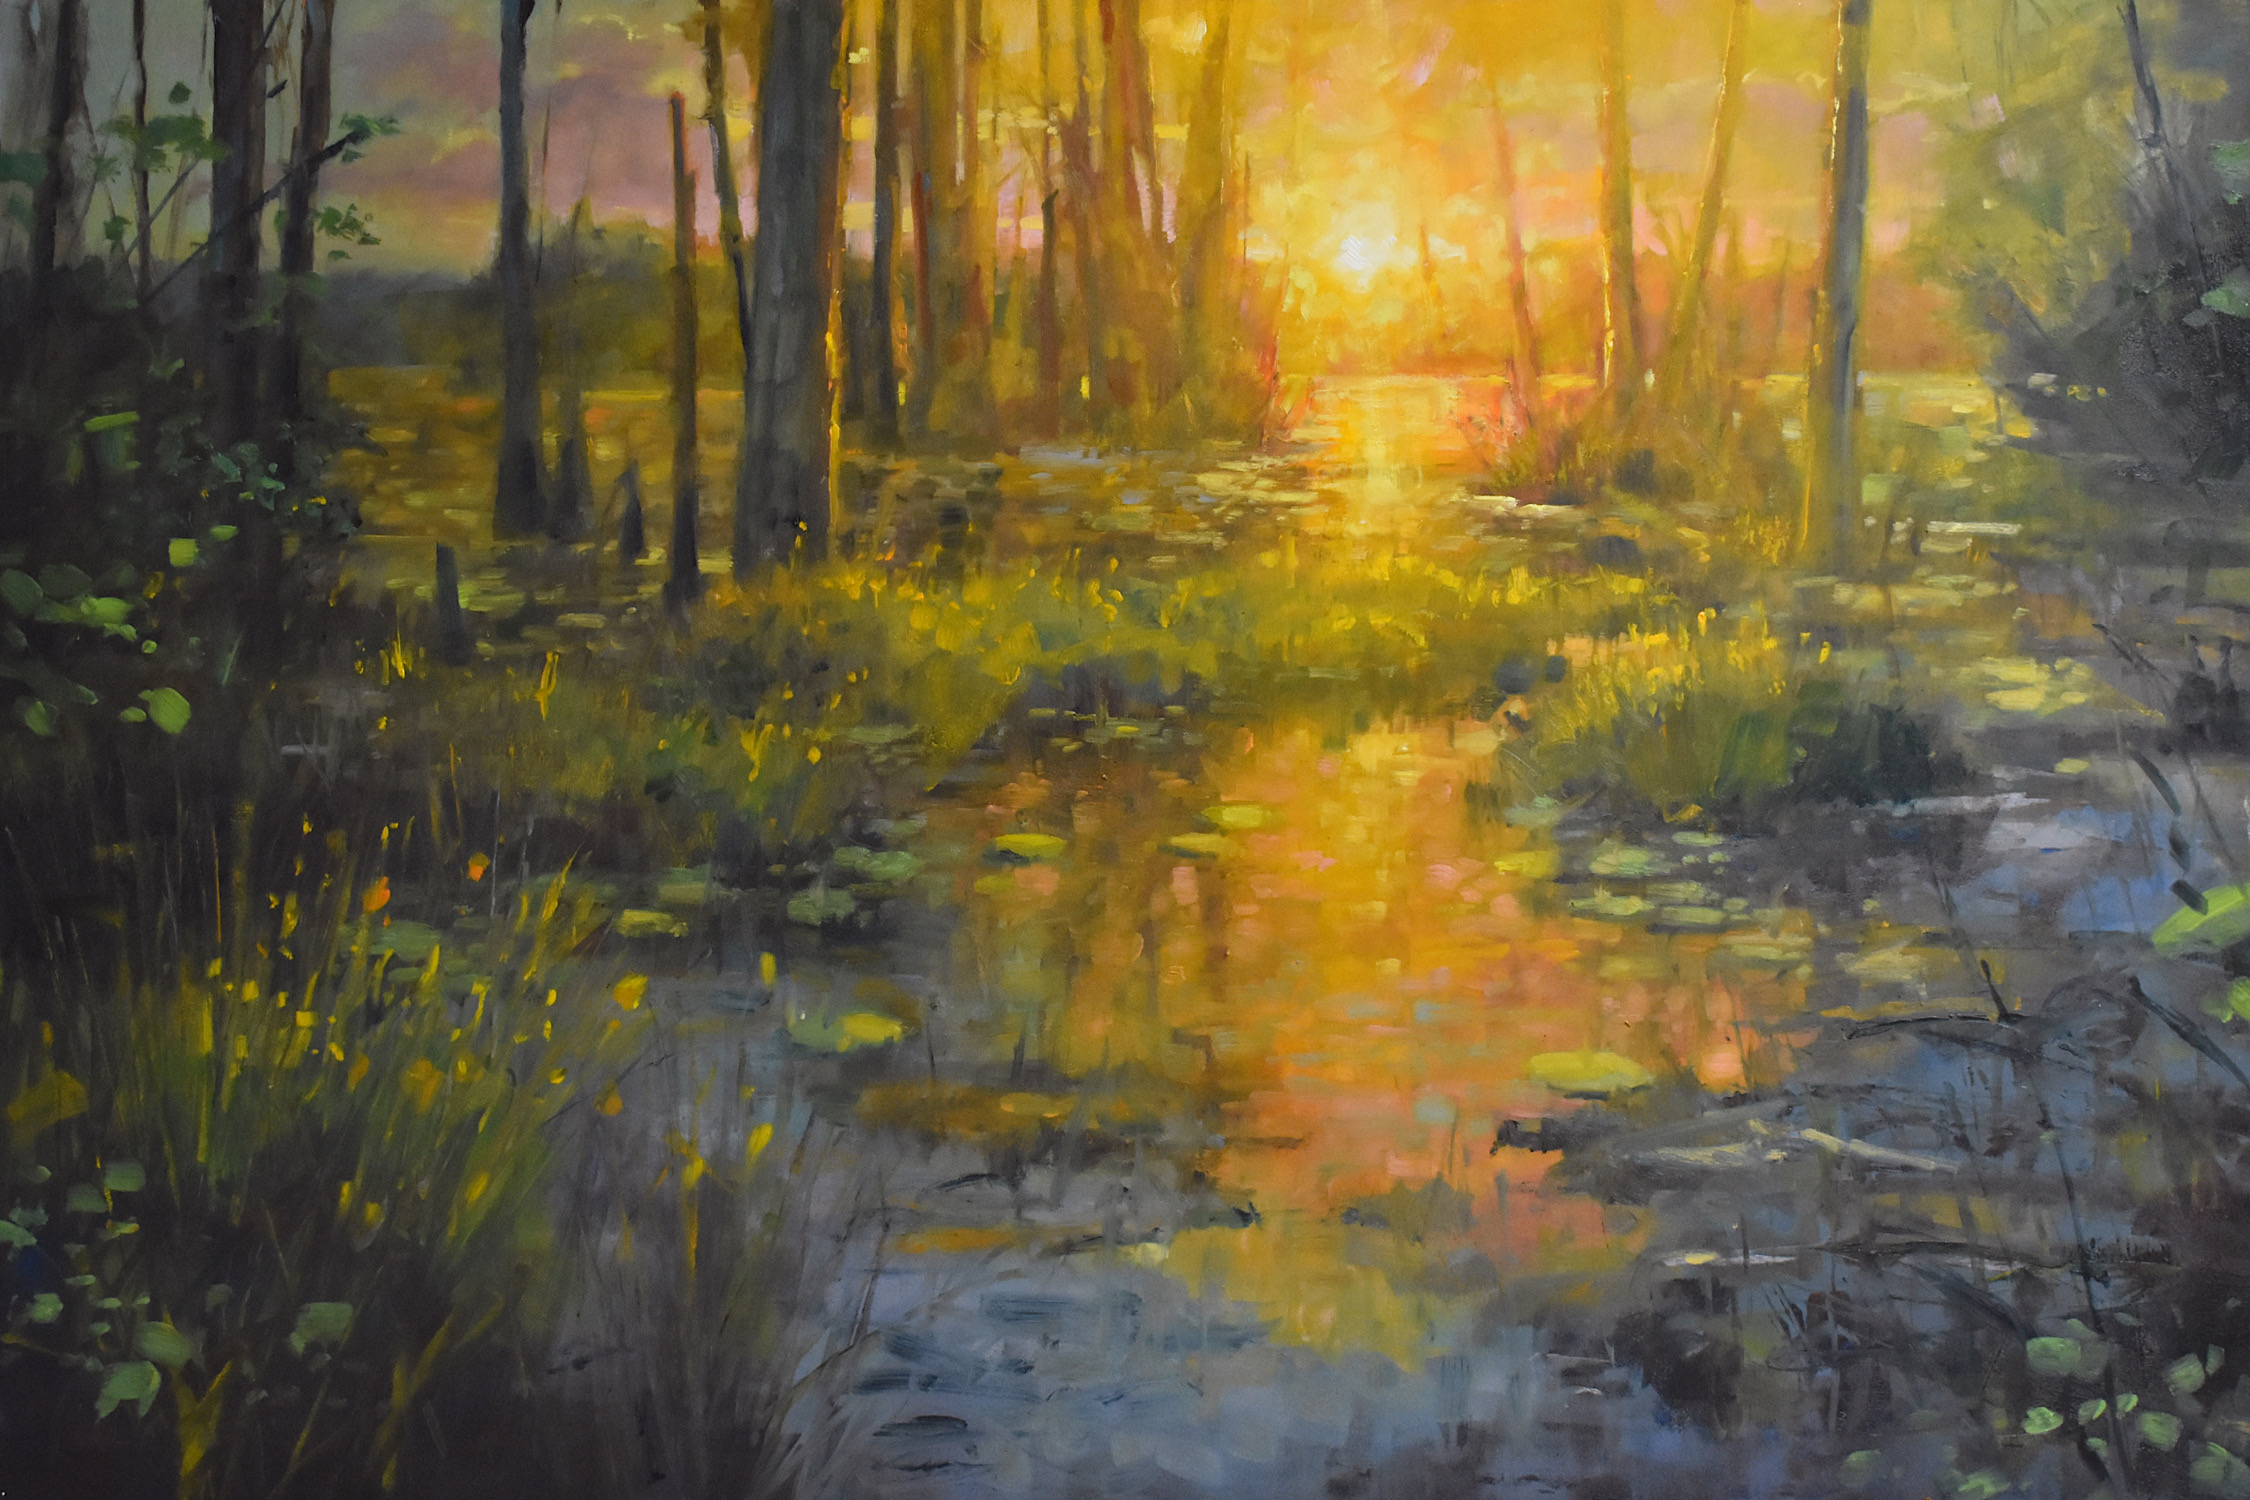 yellow and gold toned forest scene with creek